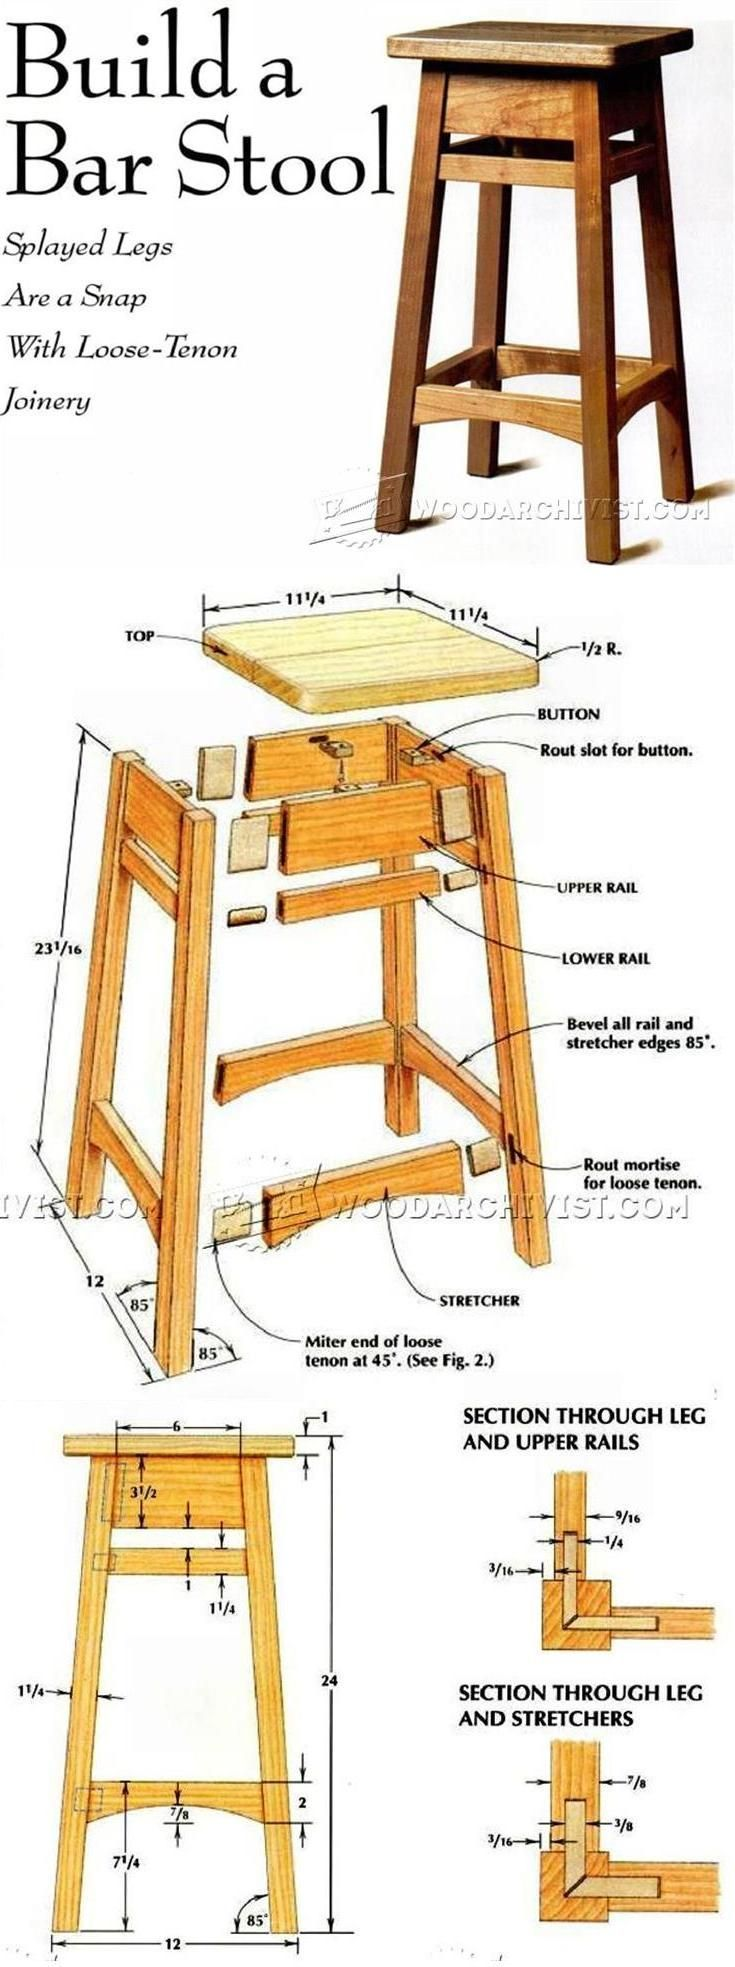 Best 20 Diy bar stools ideas on Pinterest : d6e883d0bfcc78ce370a0aec560e4e61 diy bar stools furniture plans from www.pinterest.com size 735 x 1967 jpeg 162kB